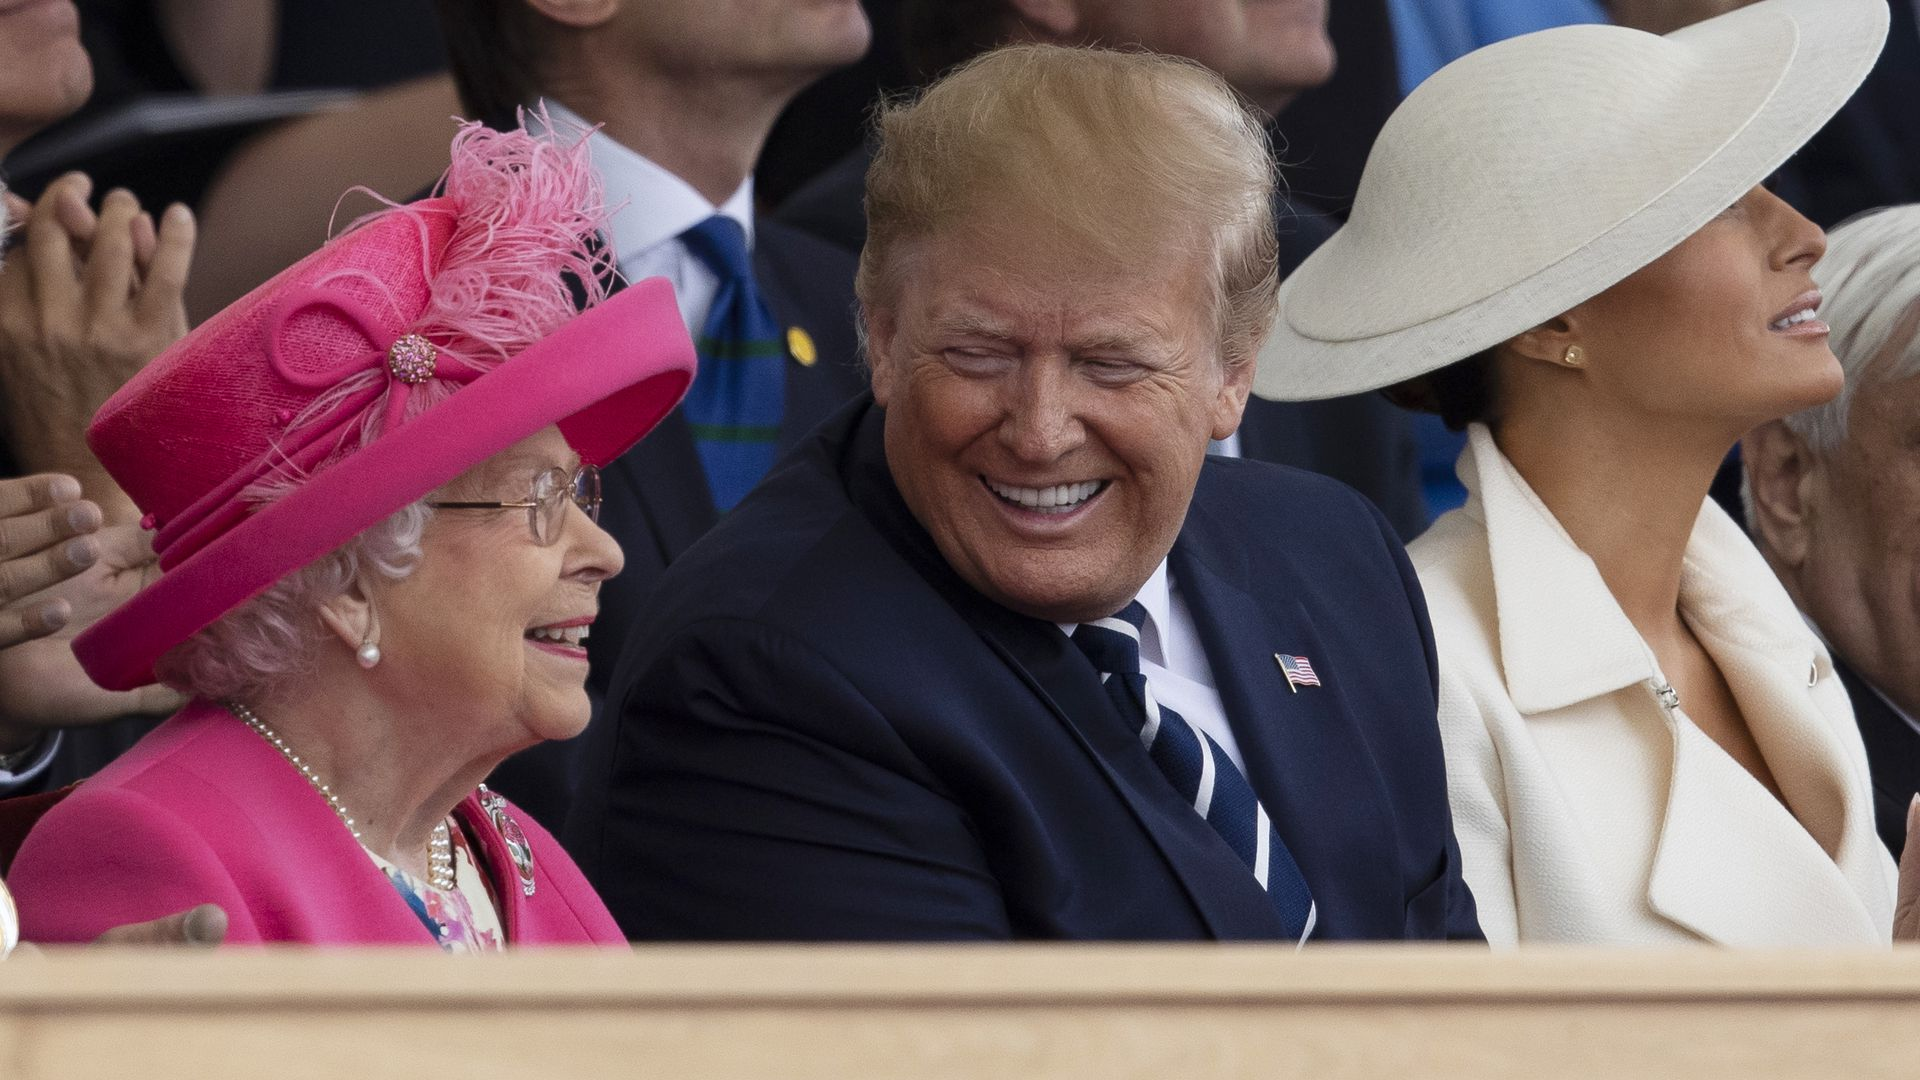 President Trump with the Queen of England